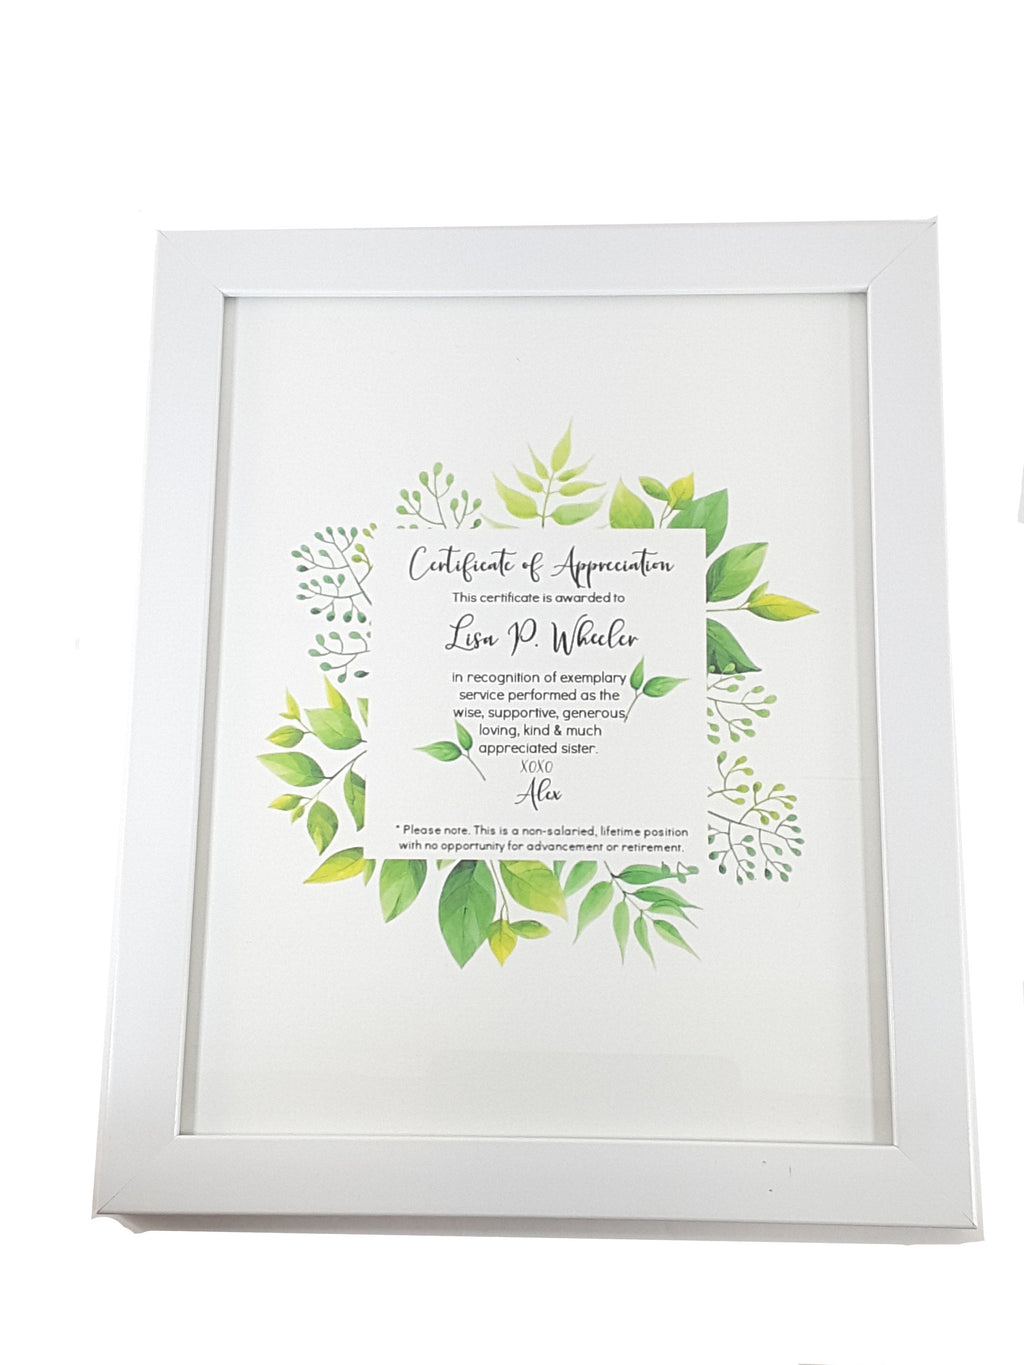 Framed Personalized Certificate of Appreciation